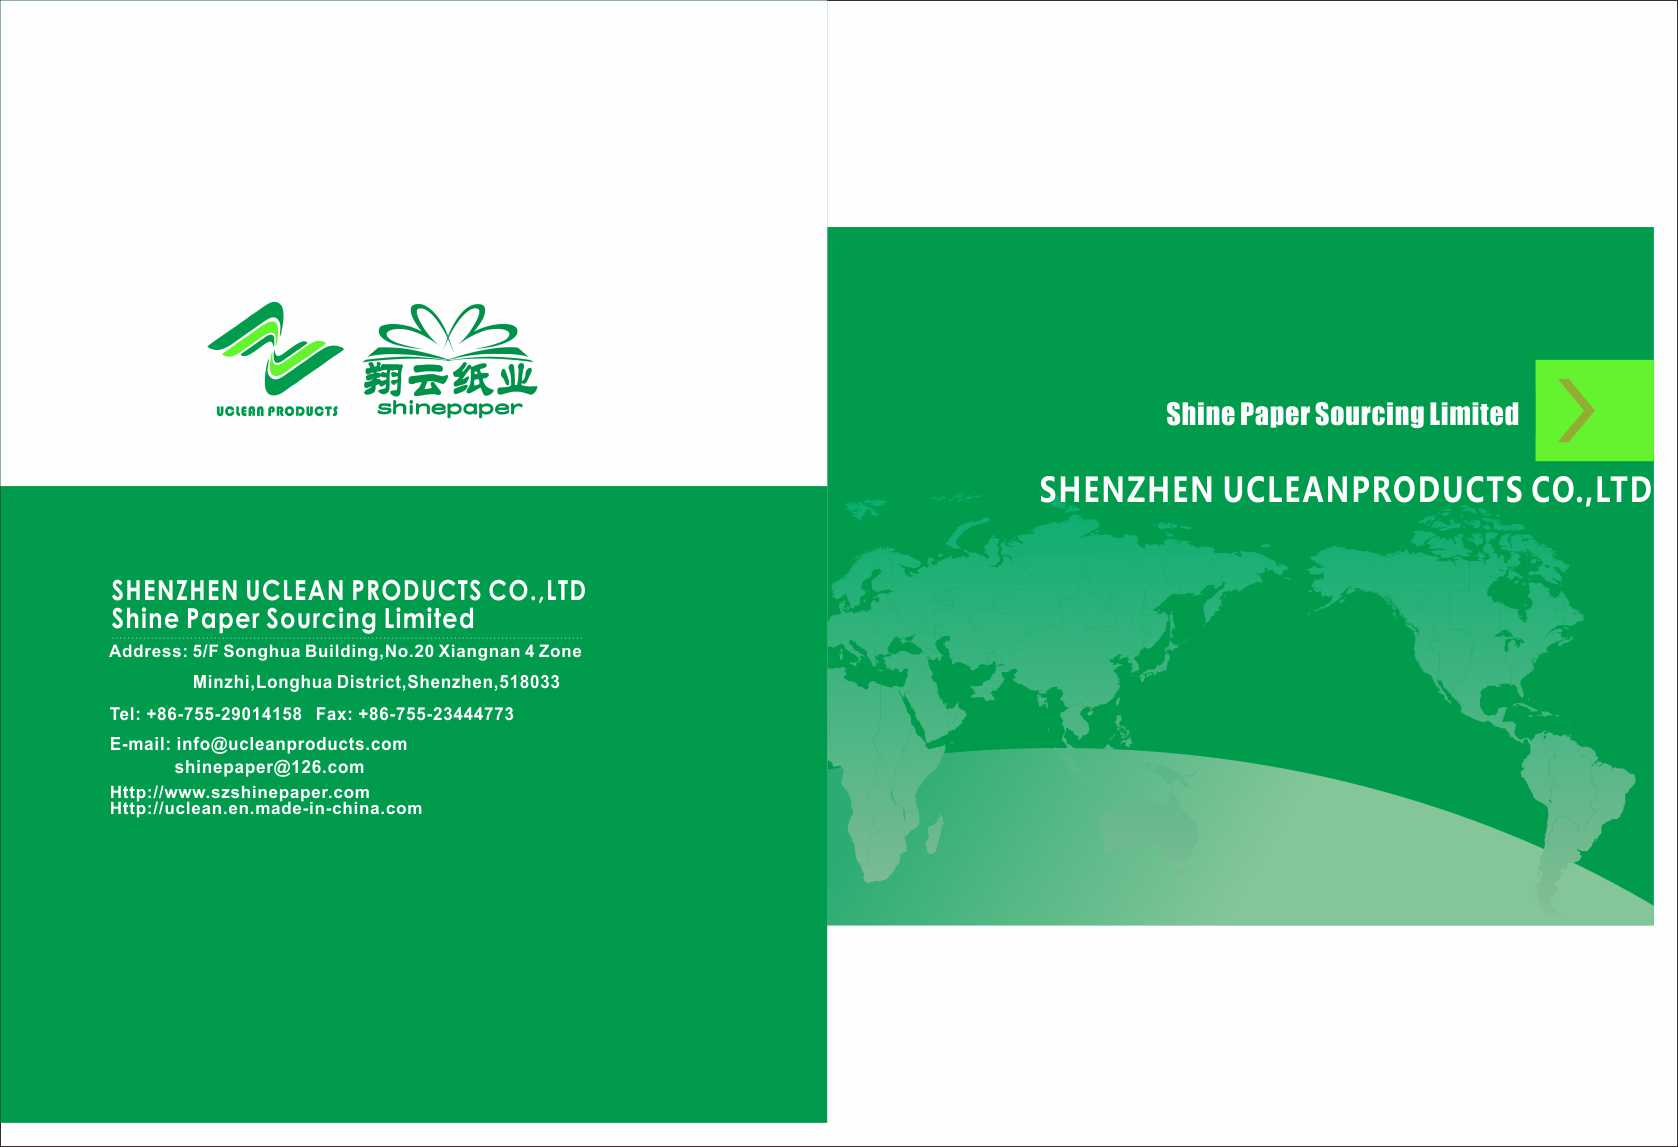 SHENZHEN UCLEAN PRODUCTS CO.,LTD